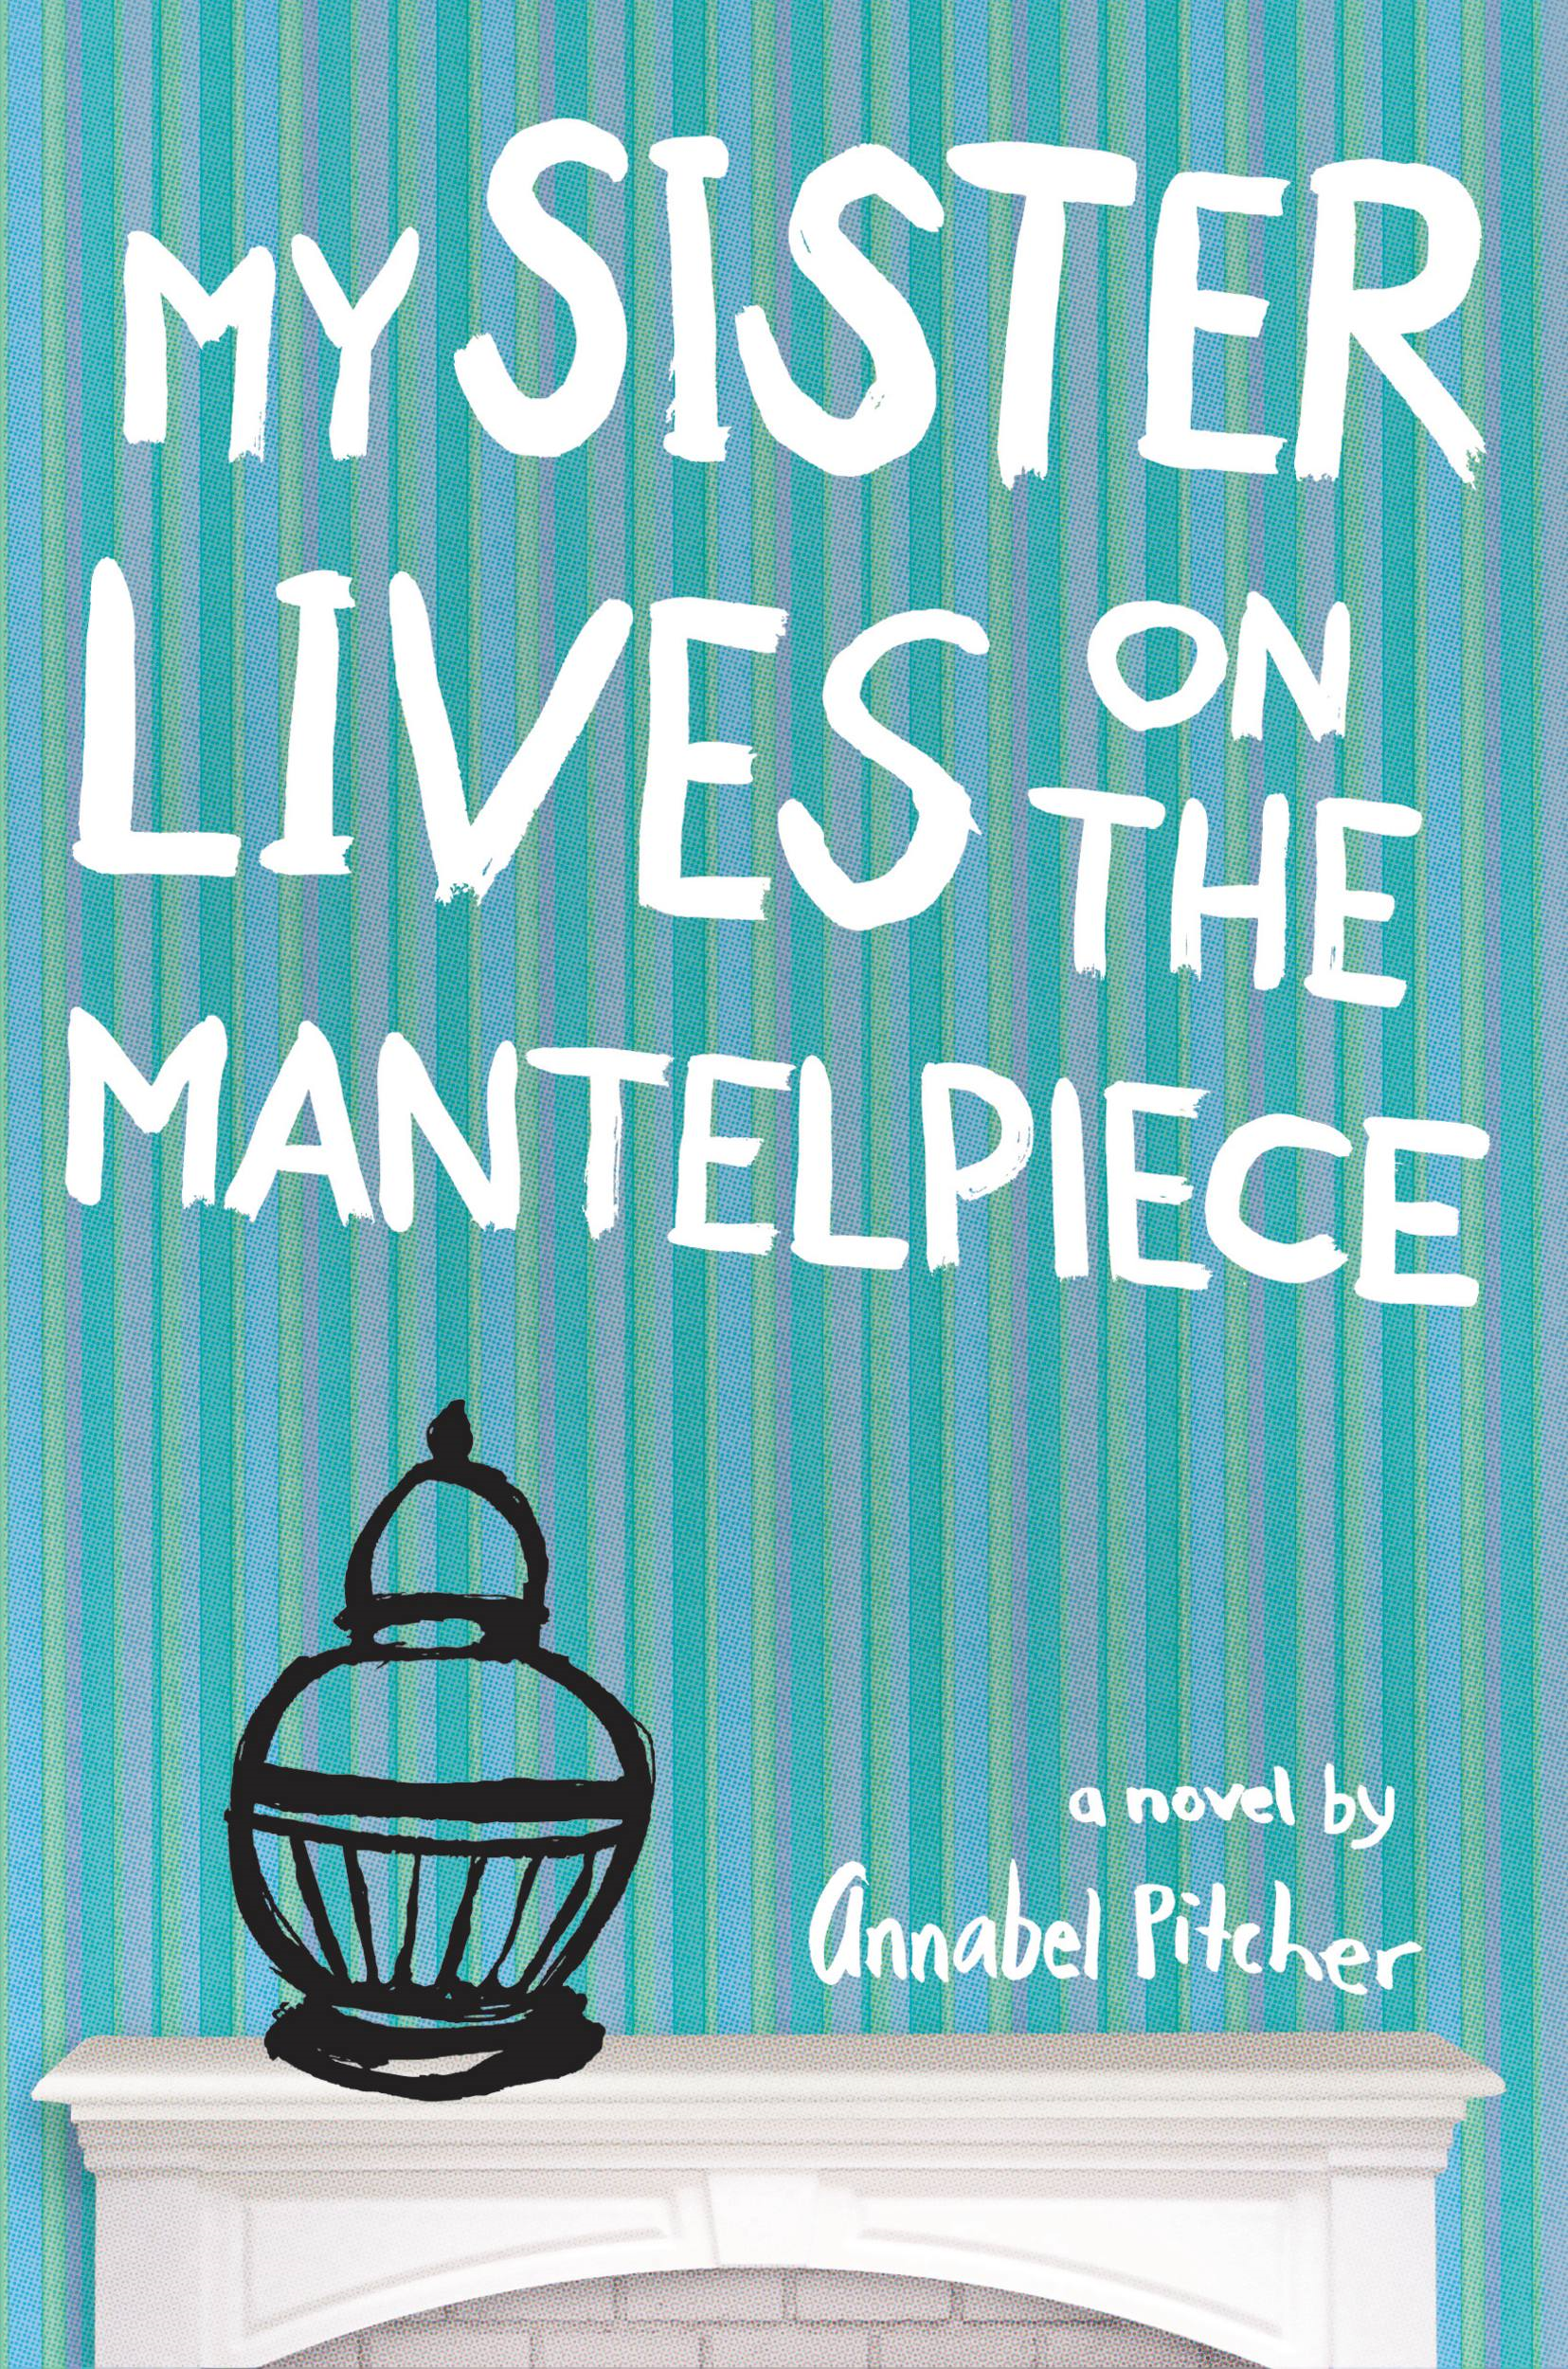 My Sister Lives on the Mantelpiece By: Annabel Pitcher